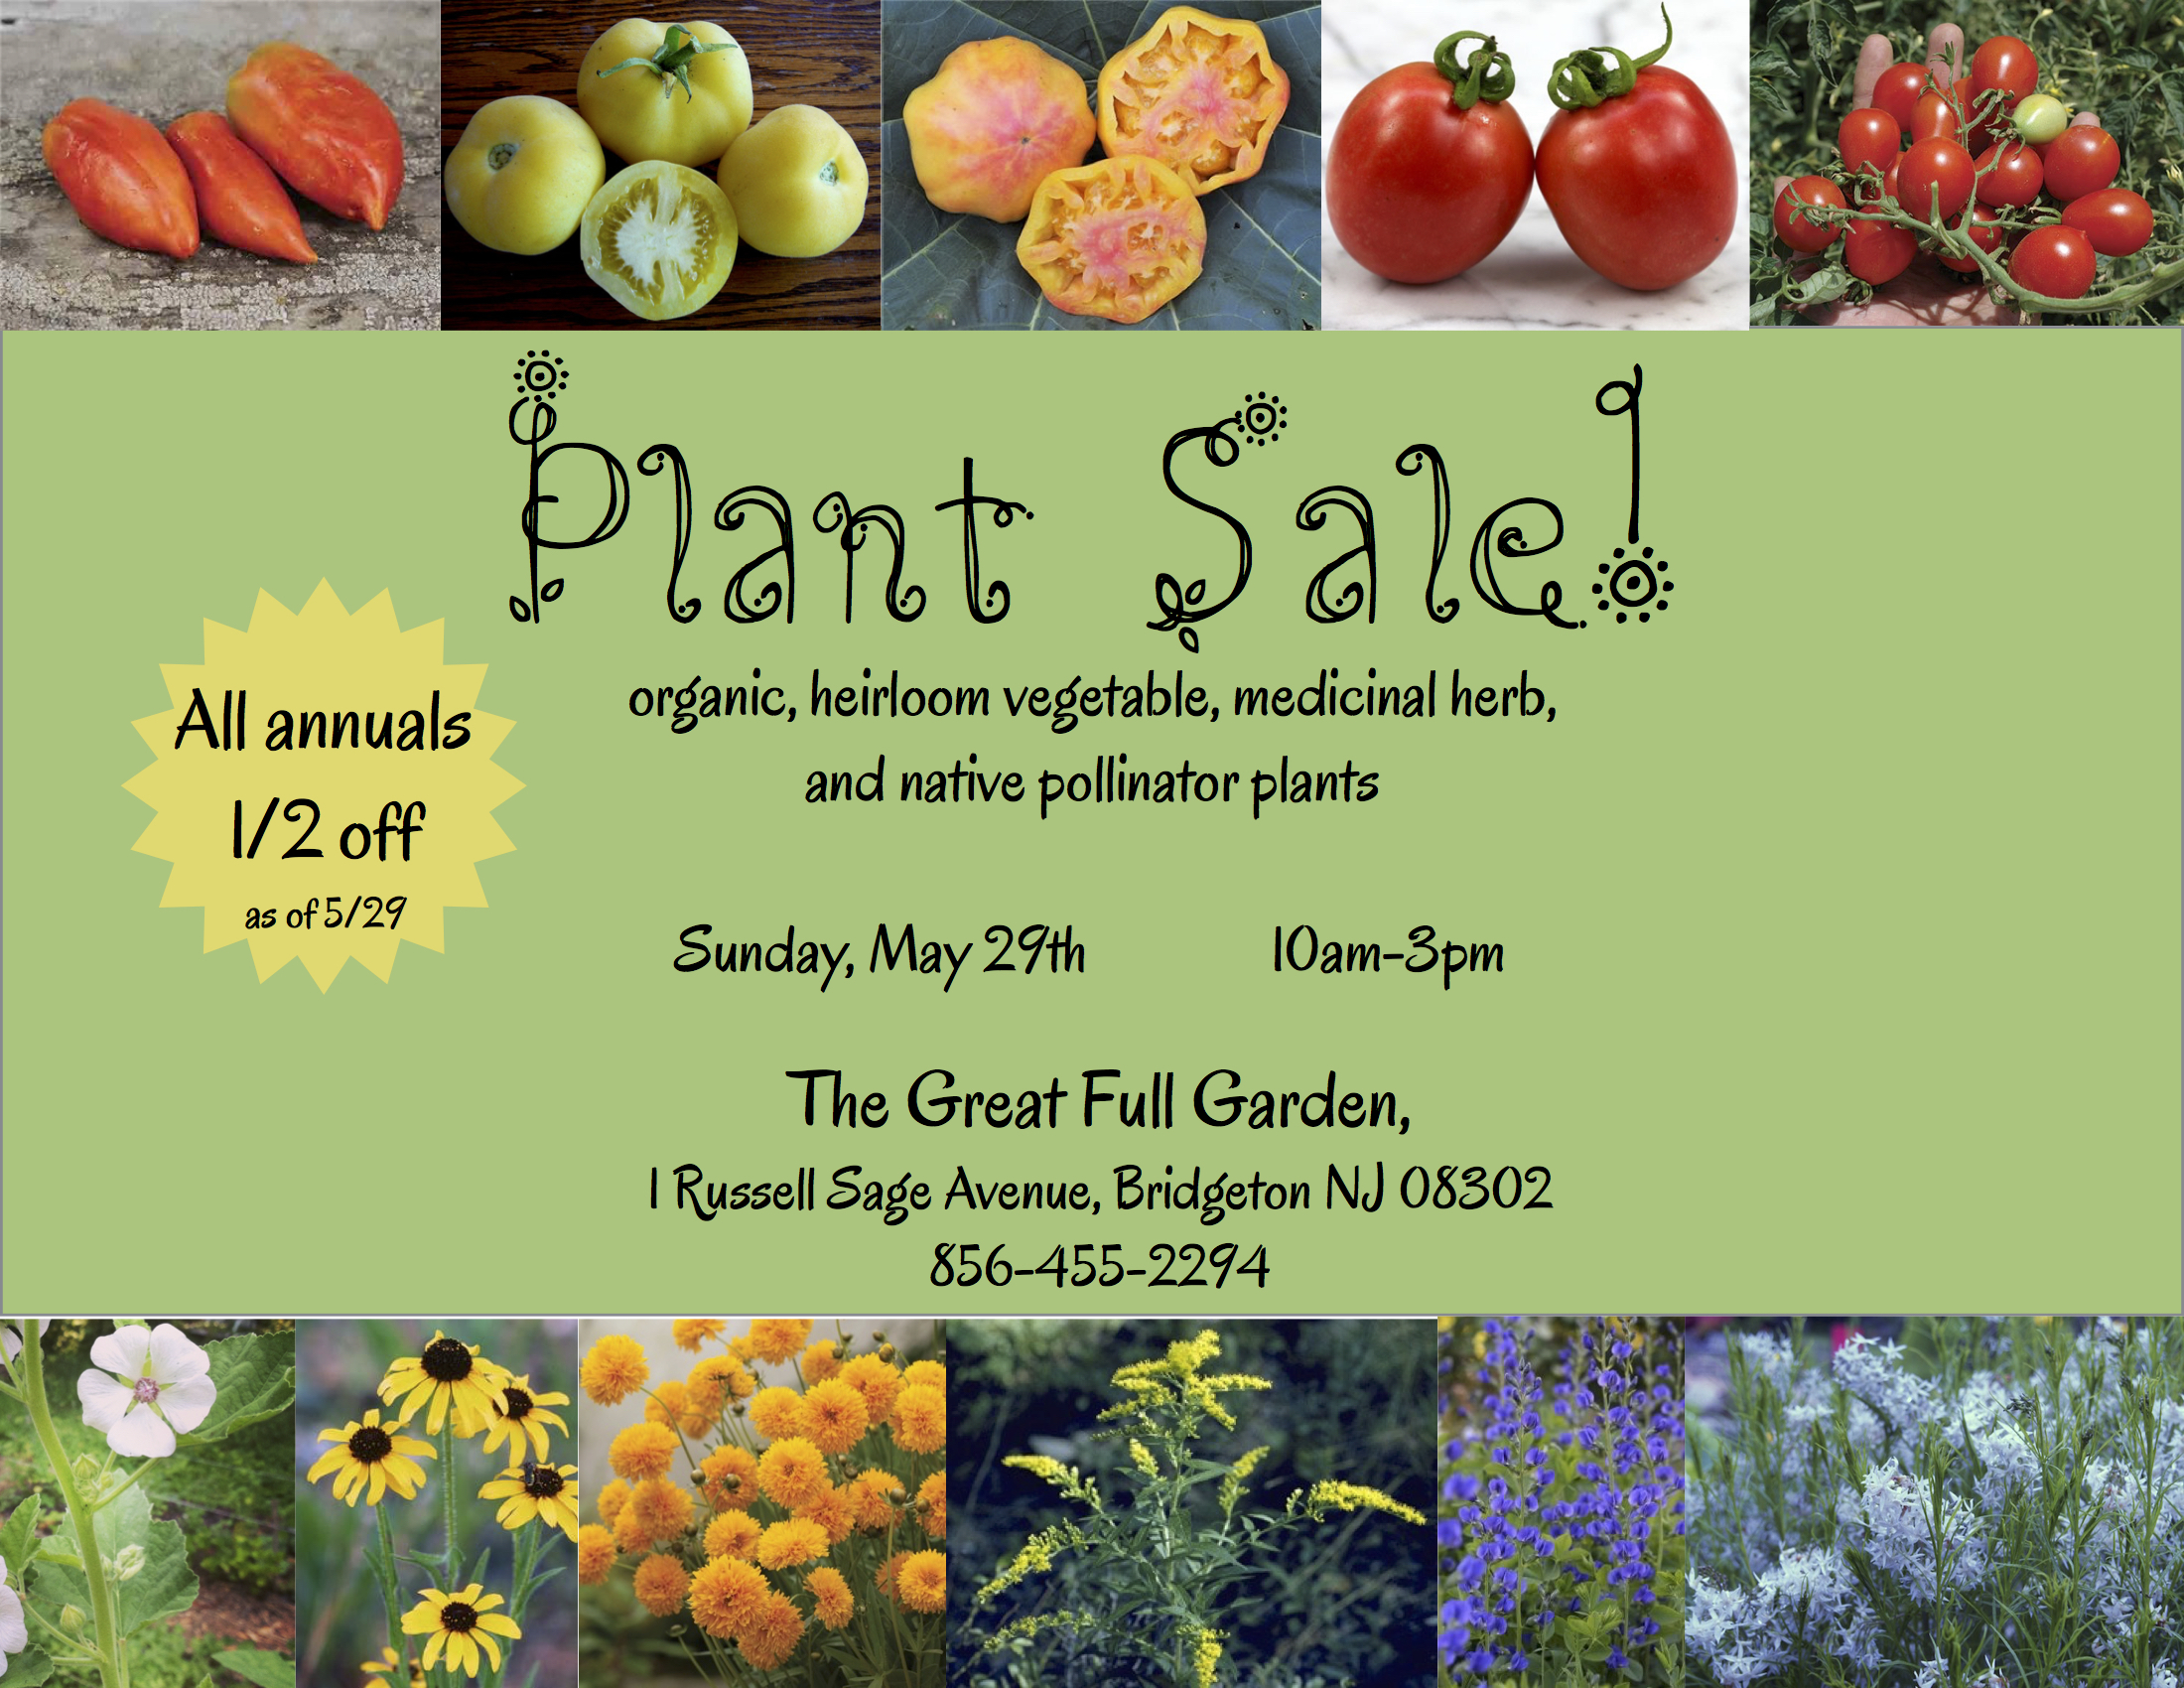 Plant Sale scheduled for May 29th 2016